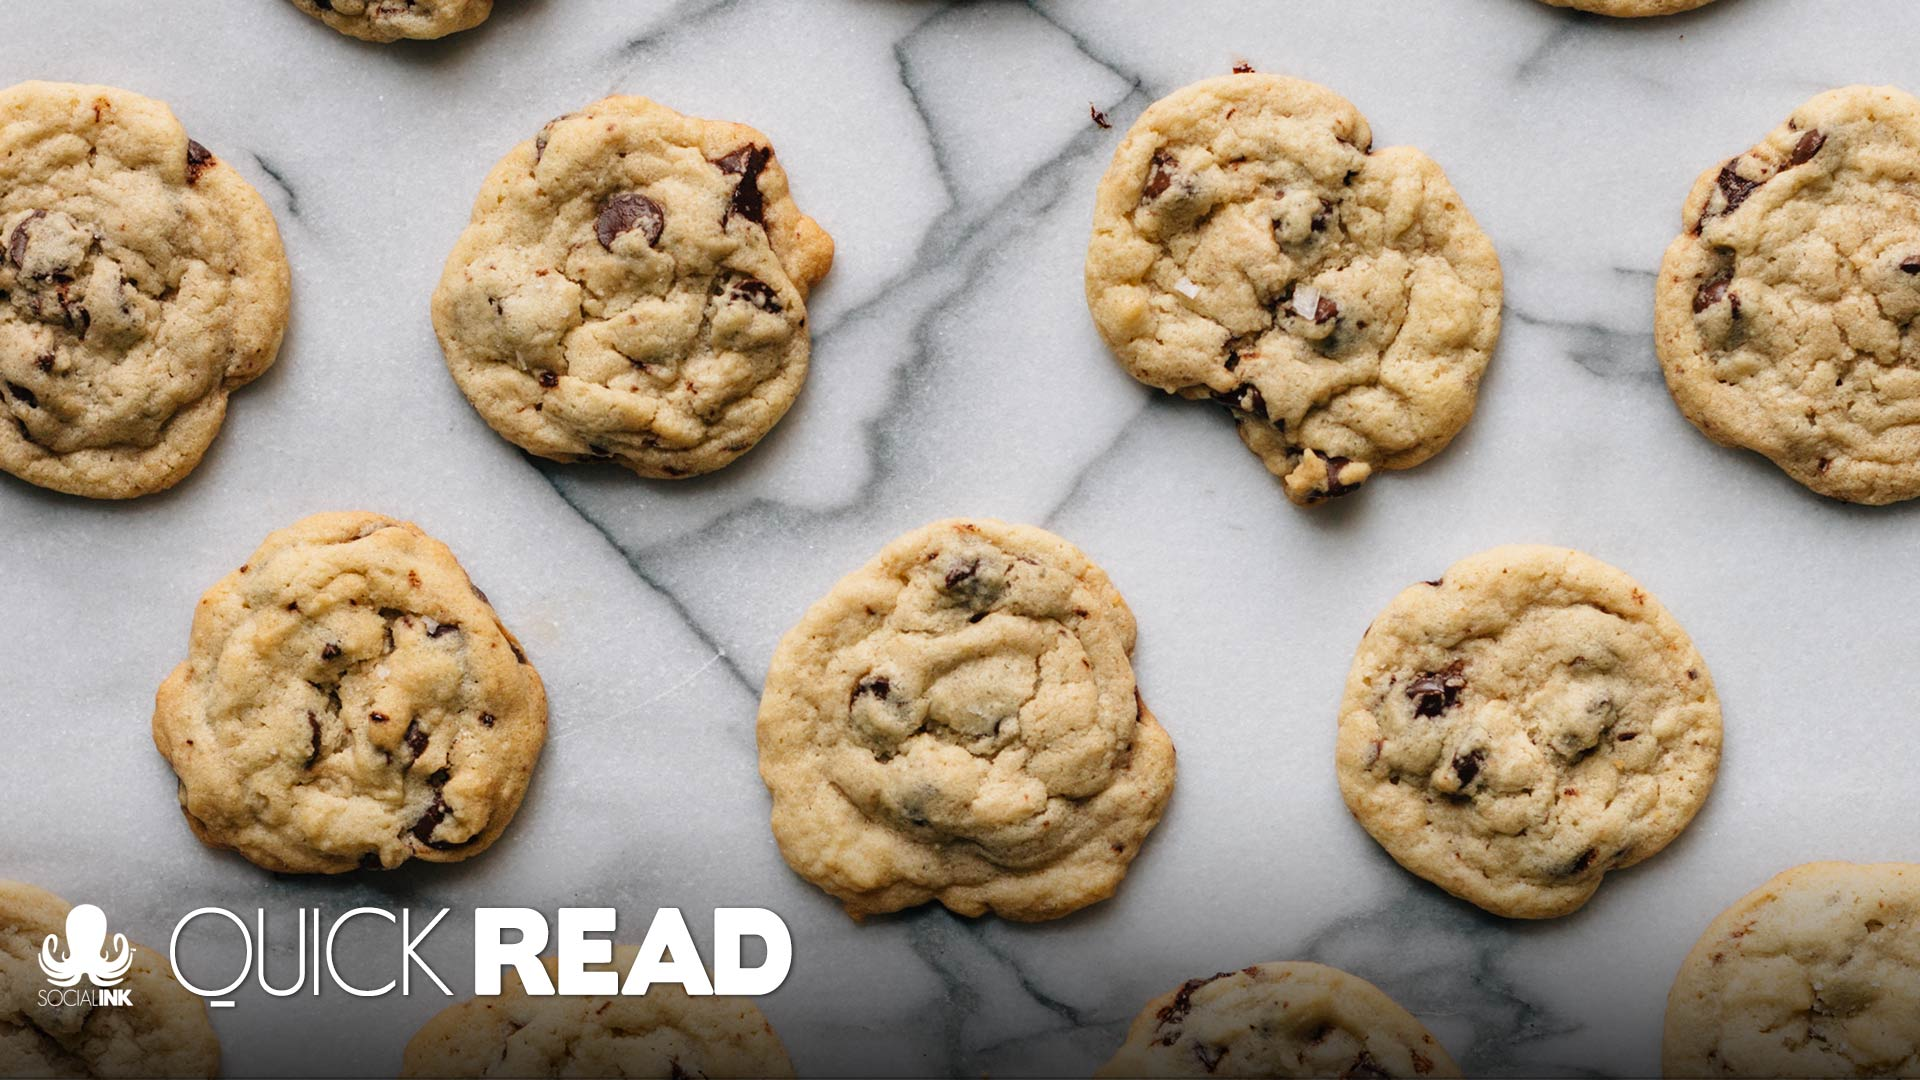 Is Your Website's Cookie Policy GDPR Compliant?